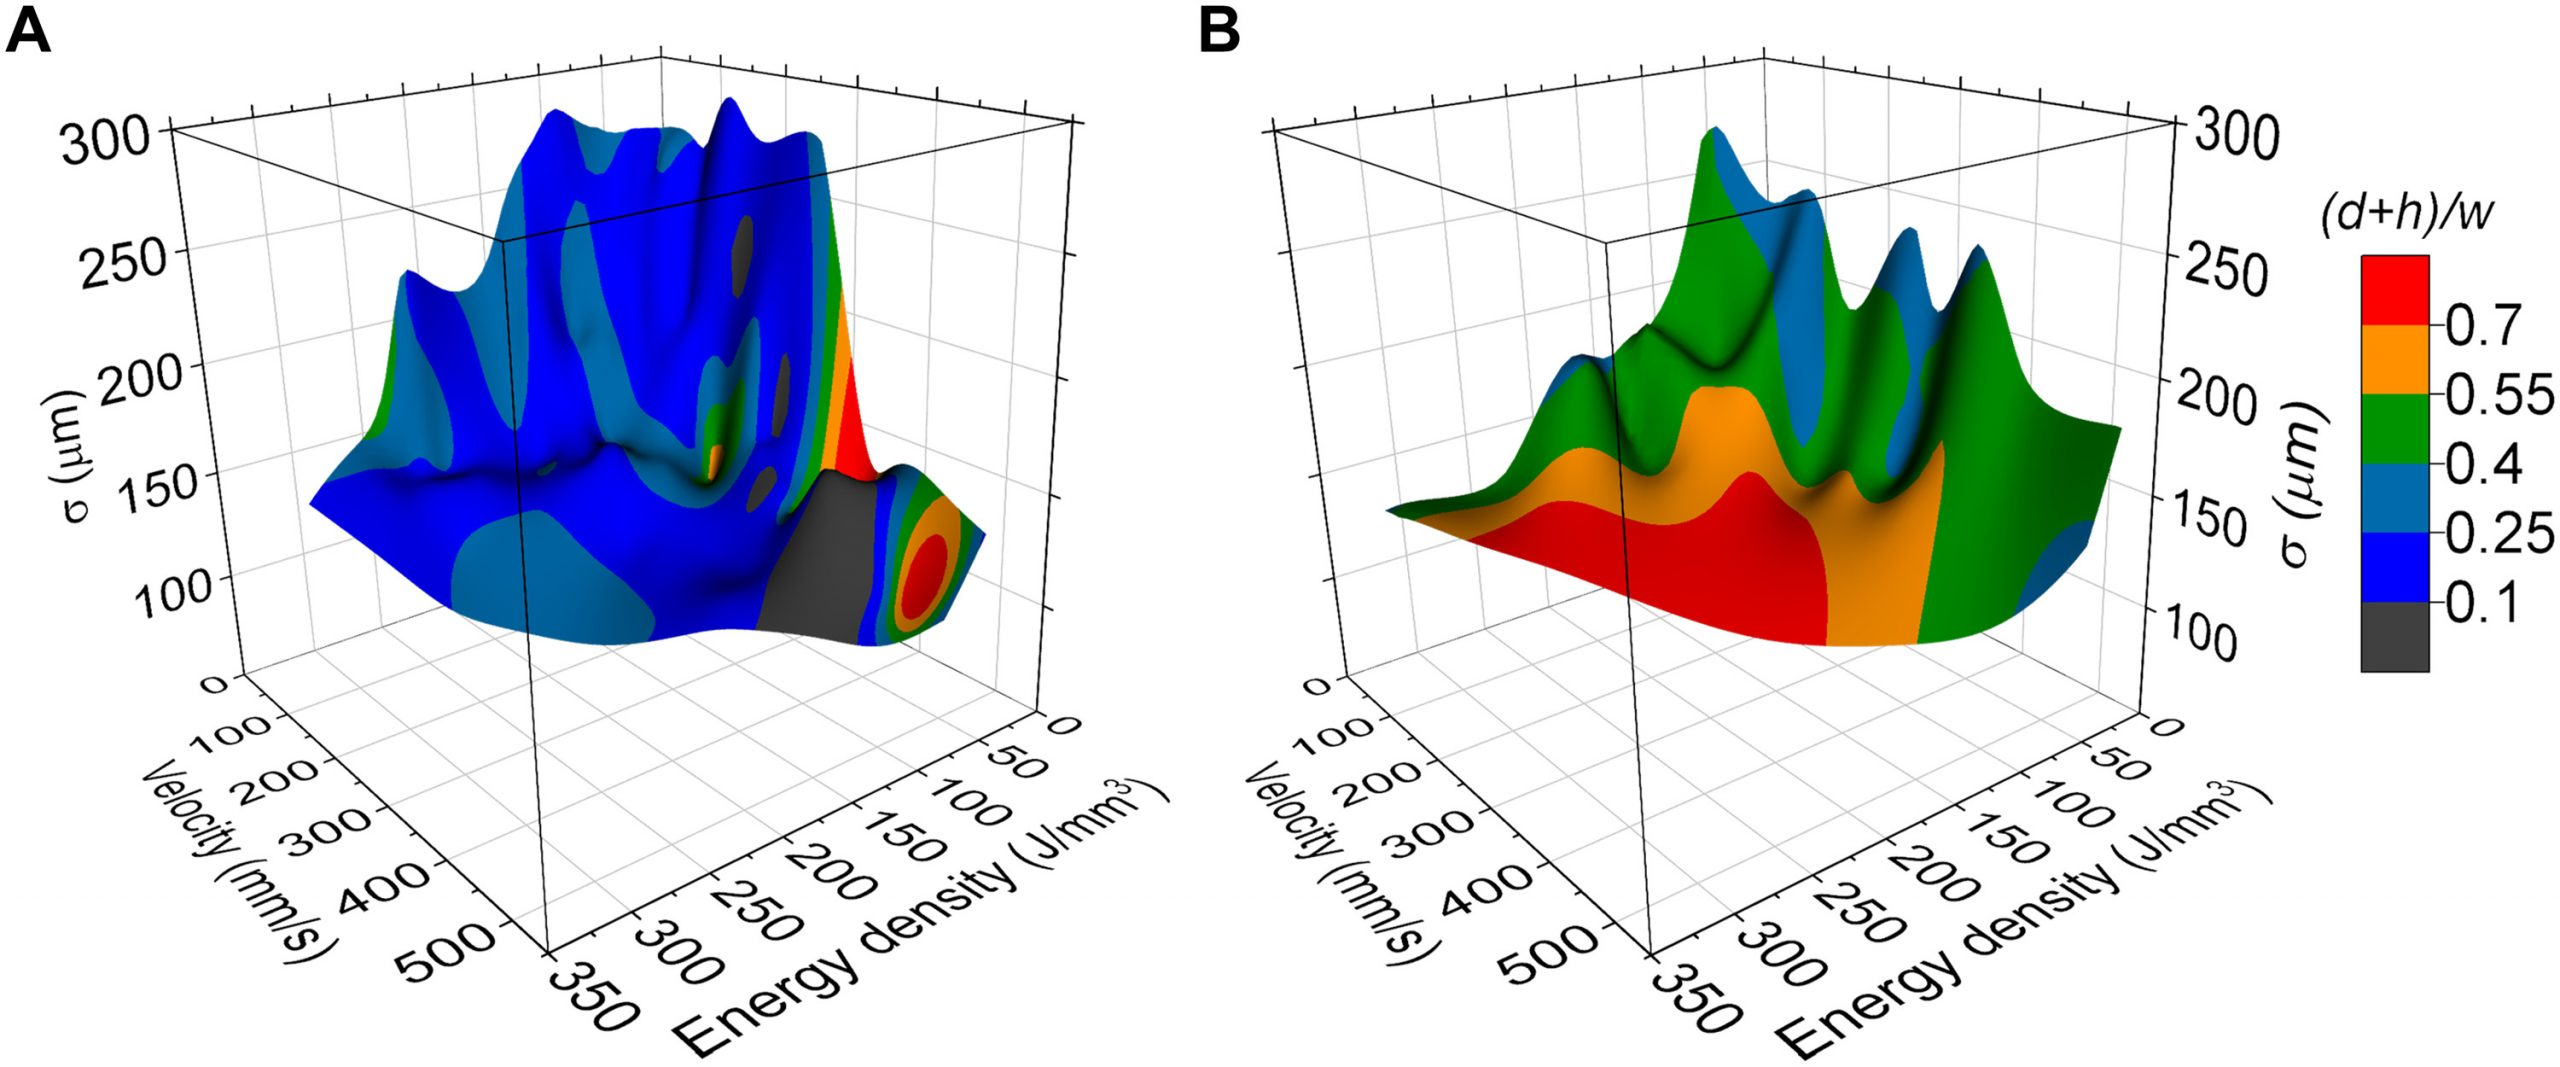 Effect of beam shaping on melt pool dimensions (A - Gaussian beam, B - Bessel beam). Image via Science Advances.